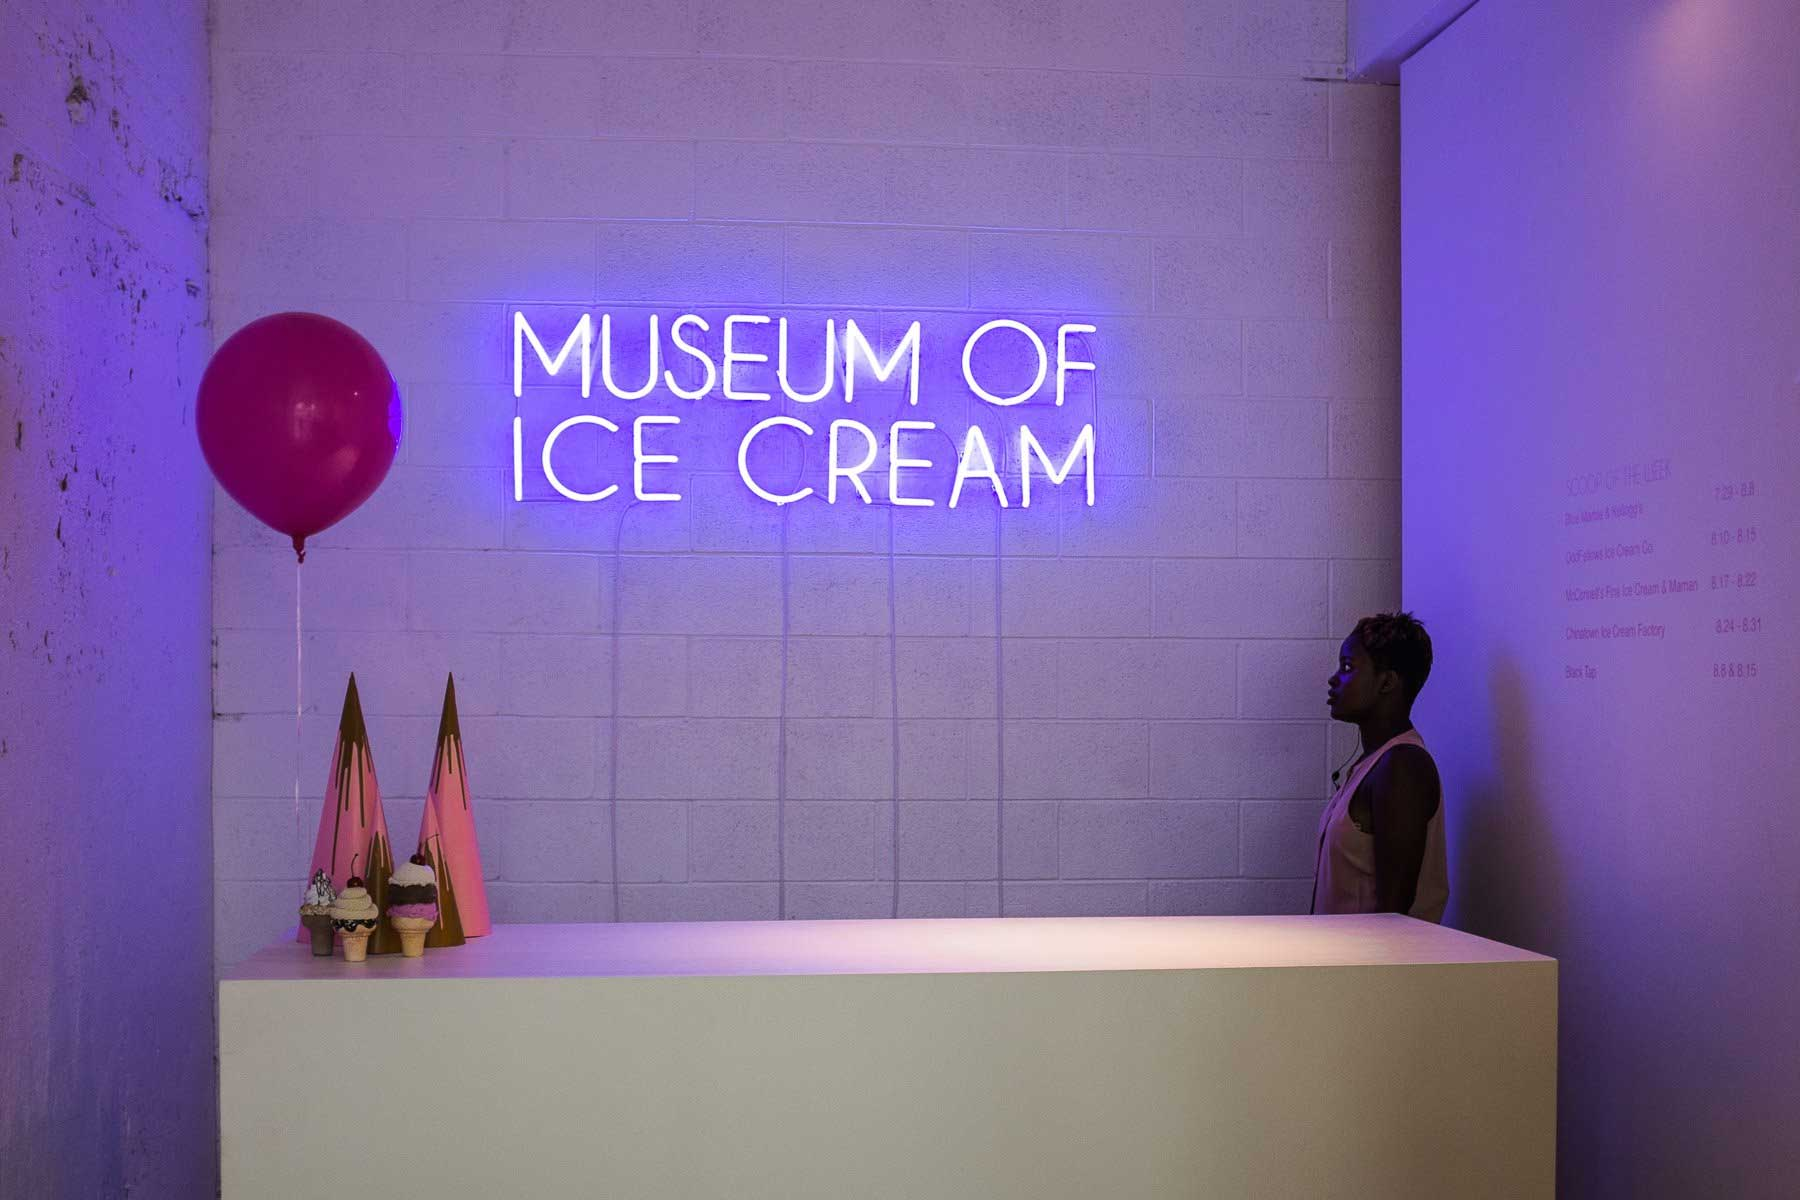 Museum of Ice Cream museum-of-ice-cream_06